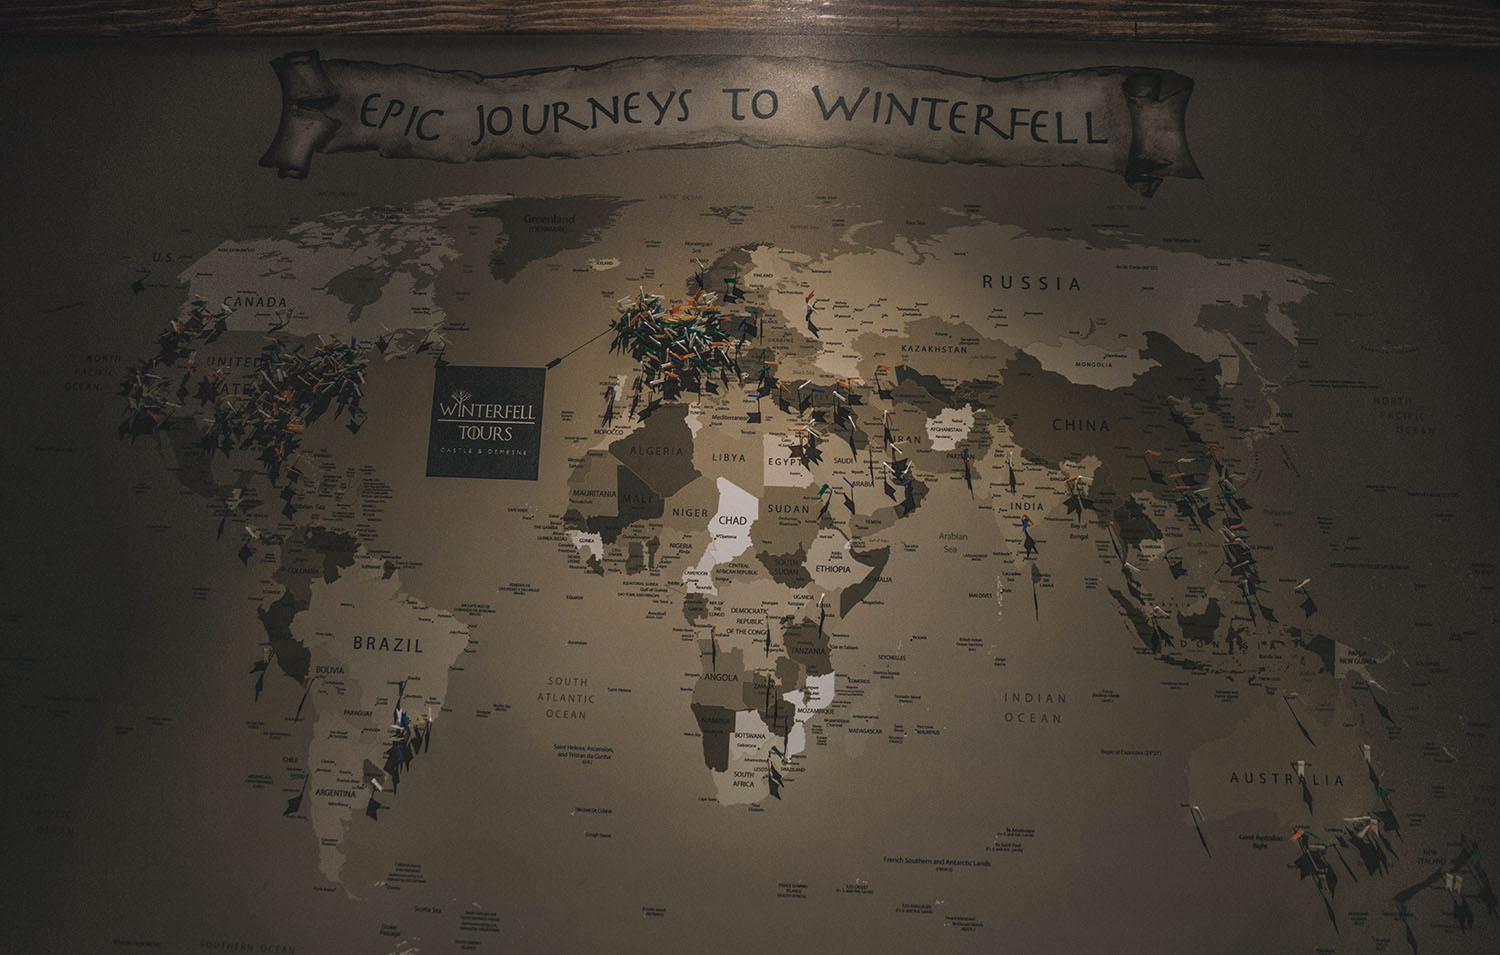 Epic Journeys to Winterfell